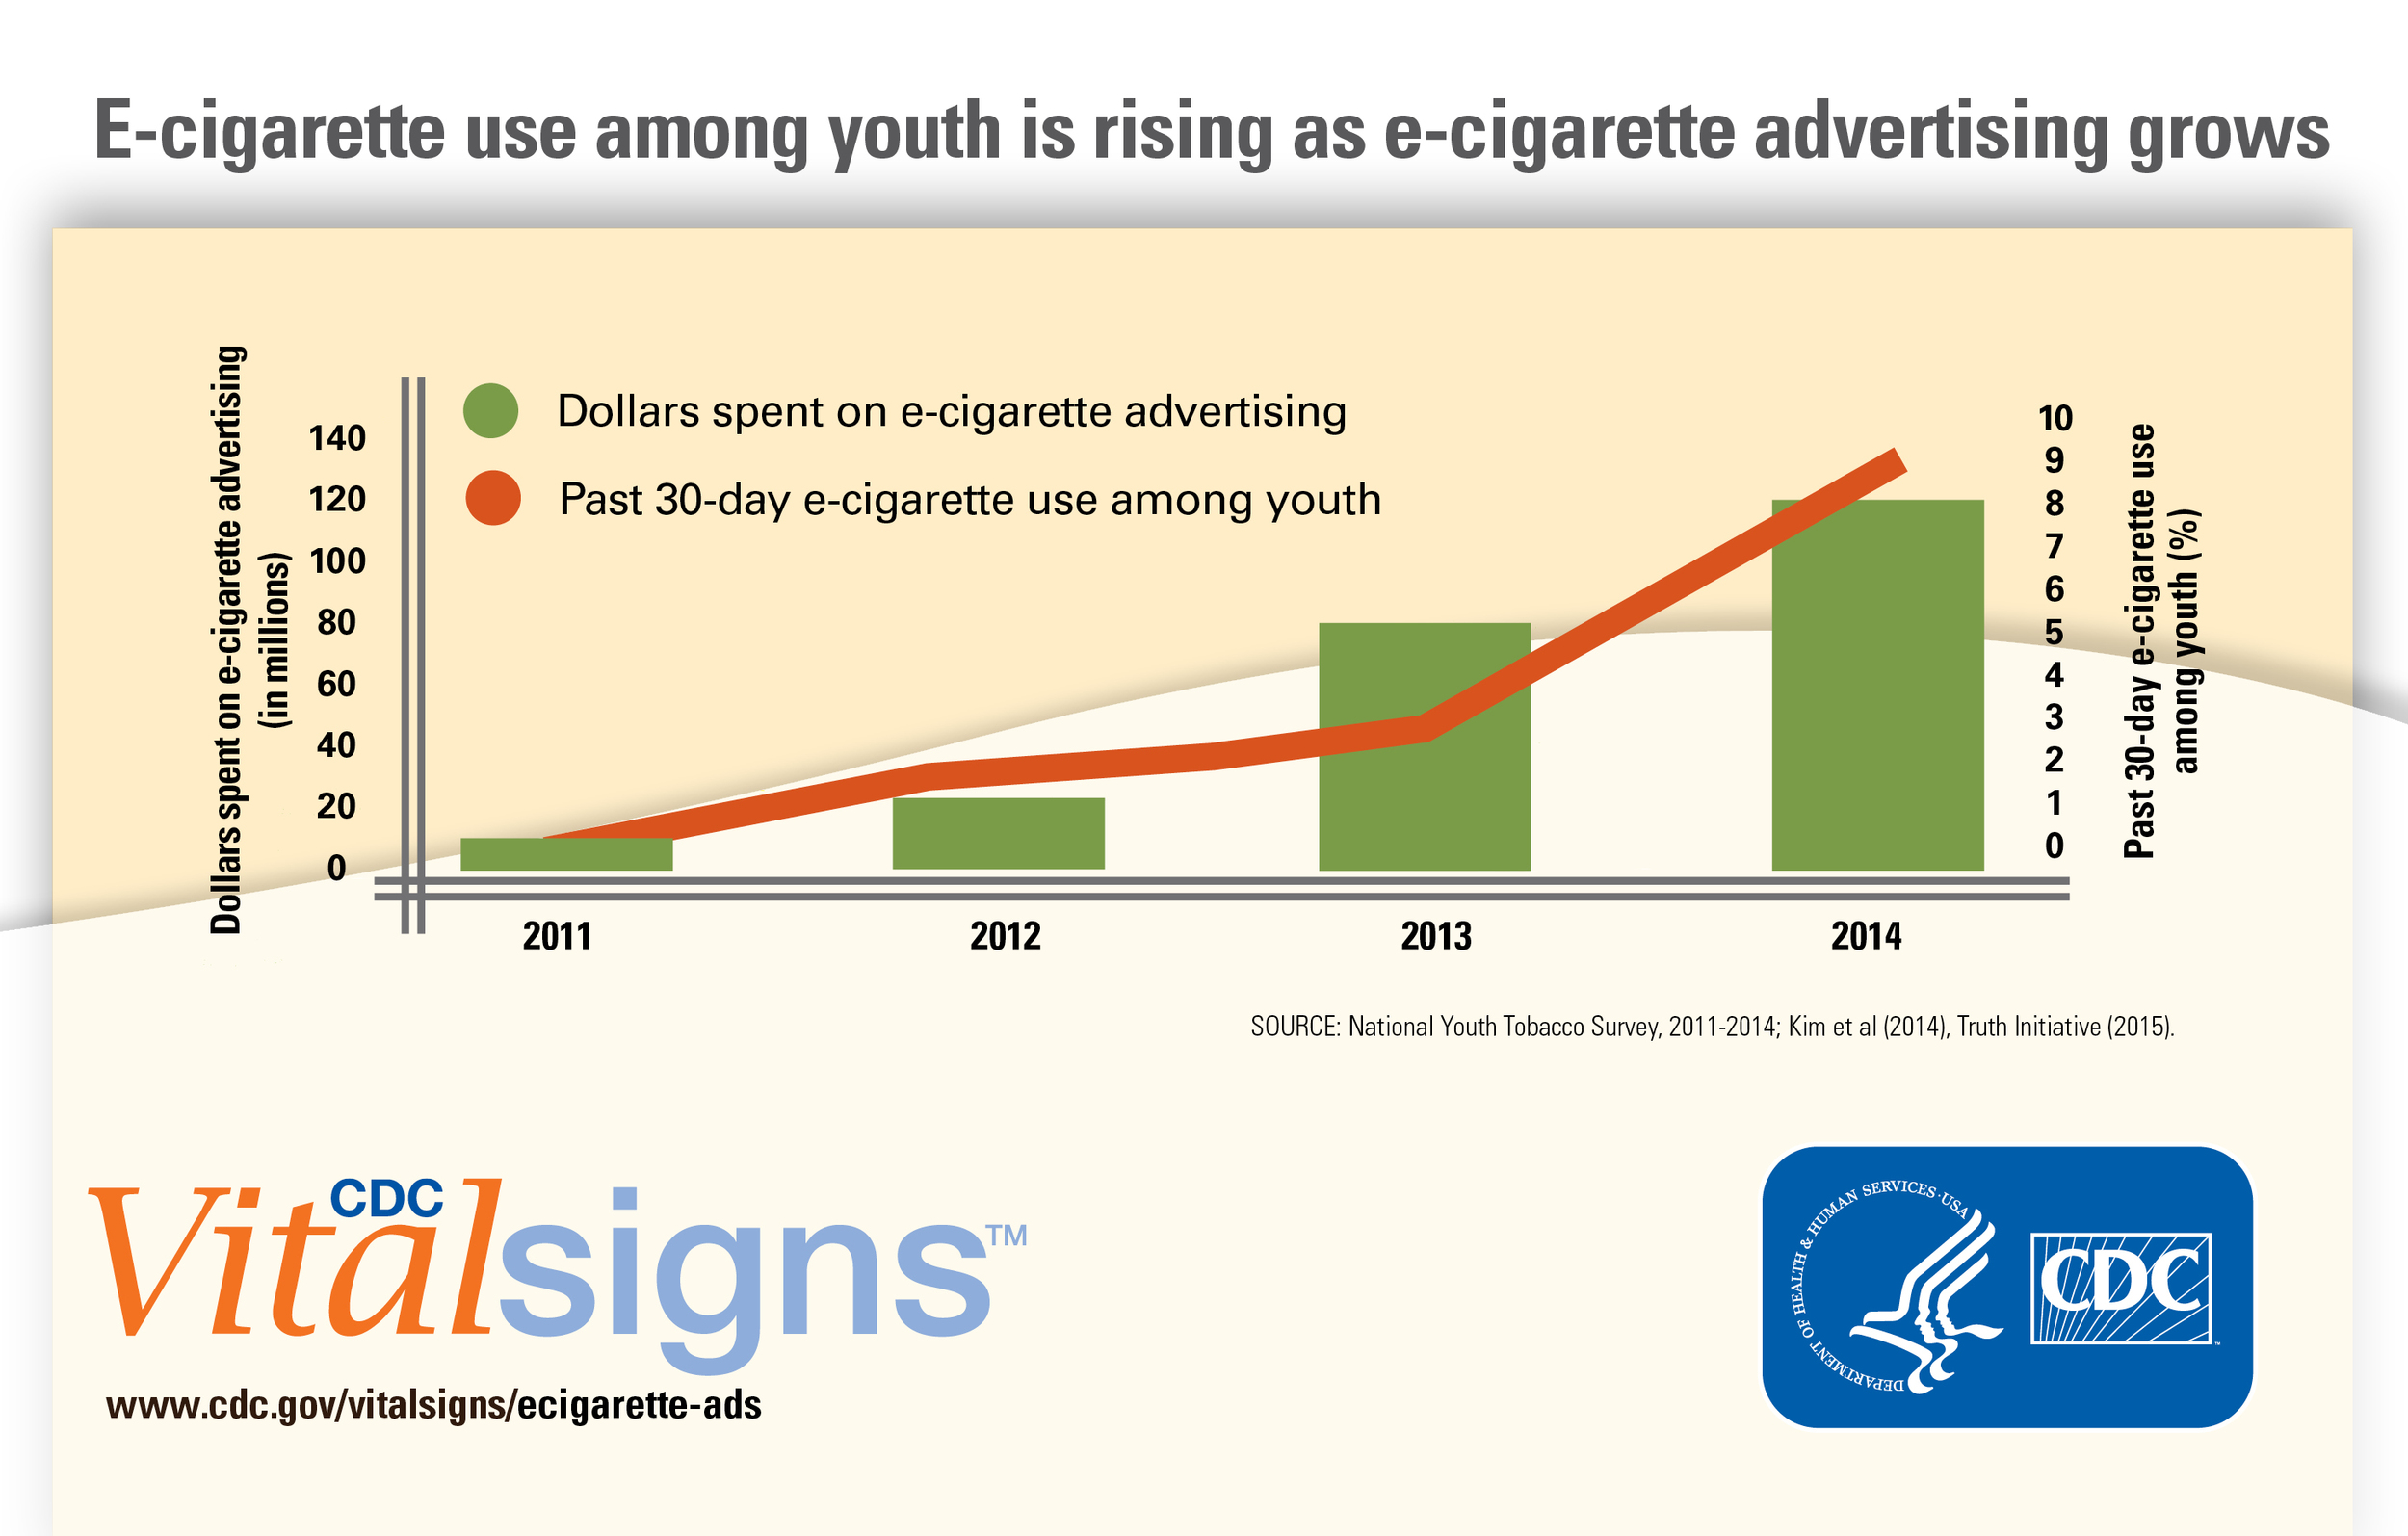 E-cigarette use among youth is rising as e-cigarette advertising grows.